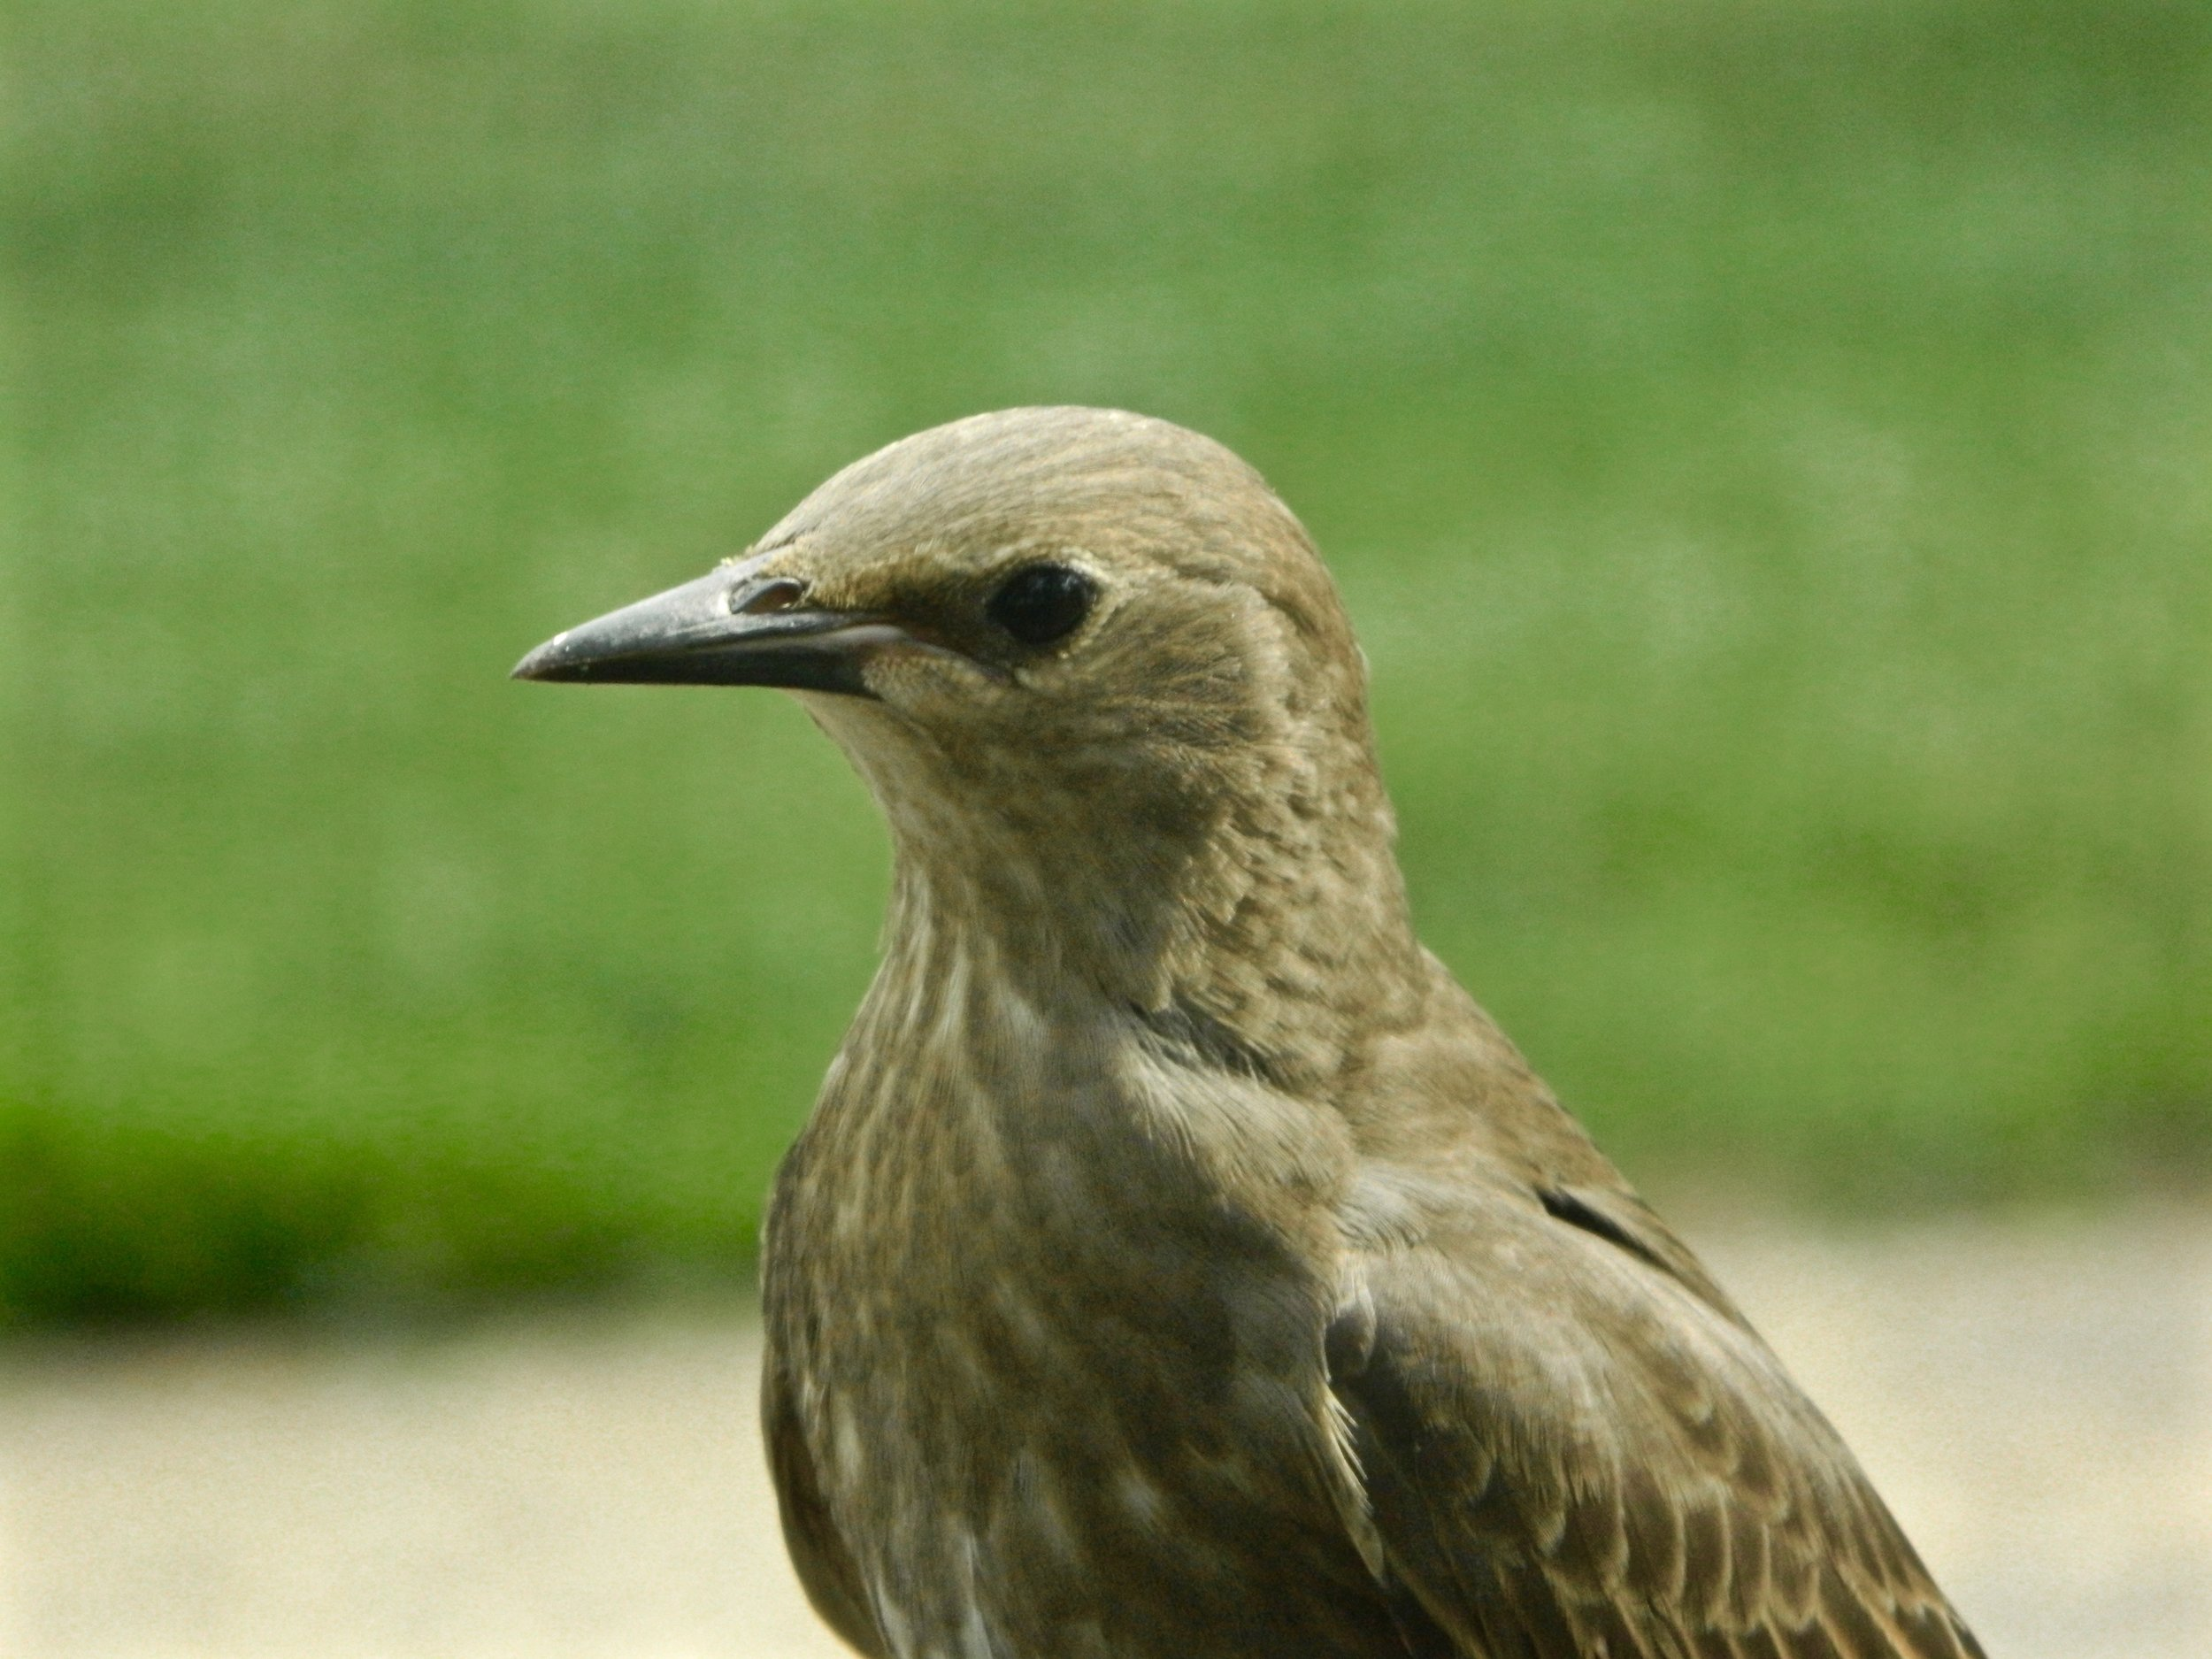 Starling in juvenile plumage, picture by Toribird